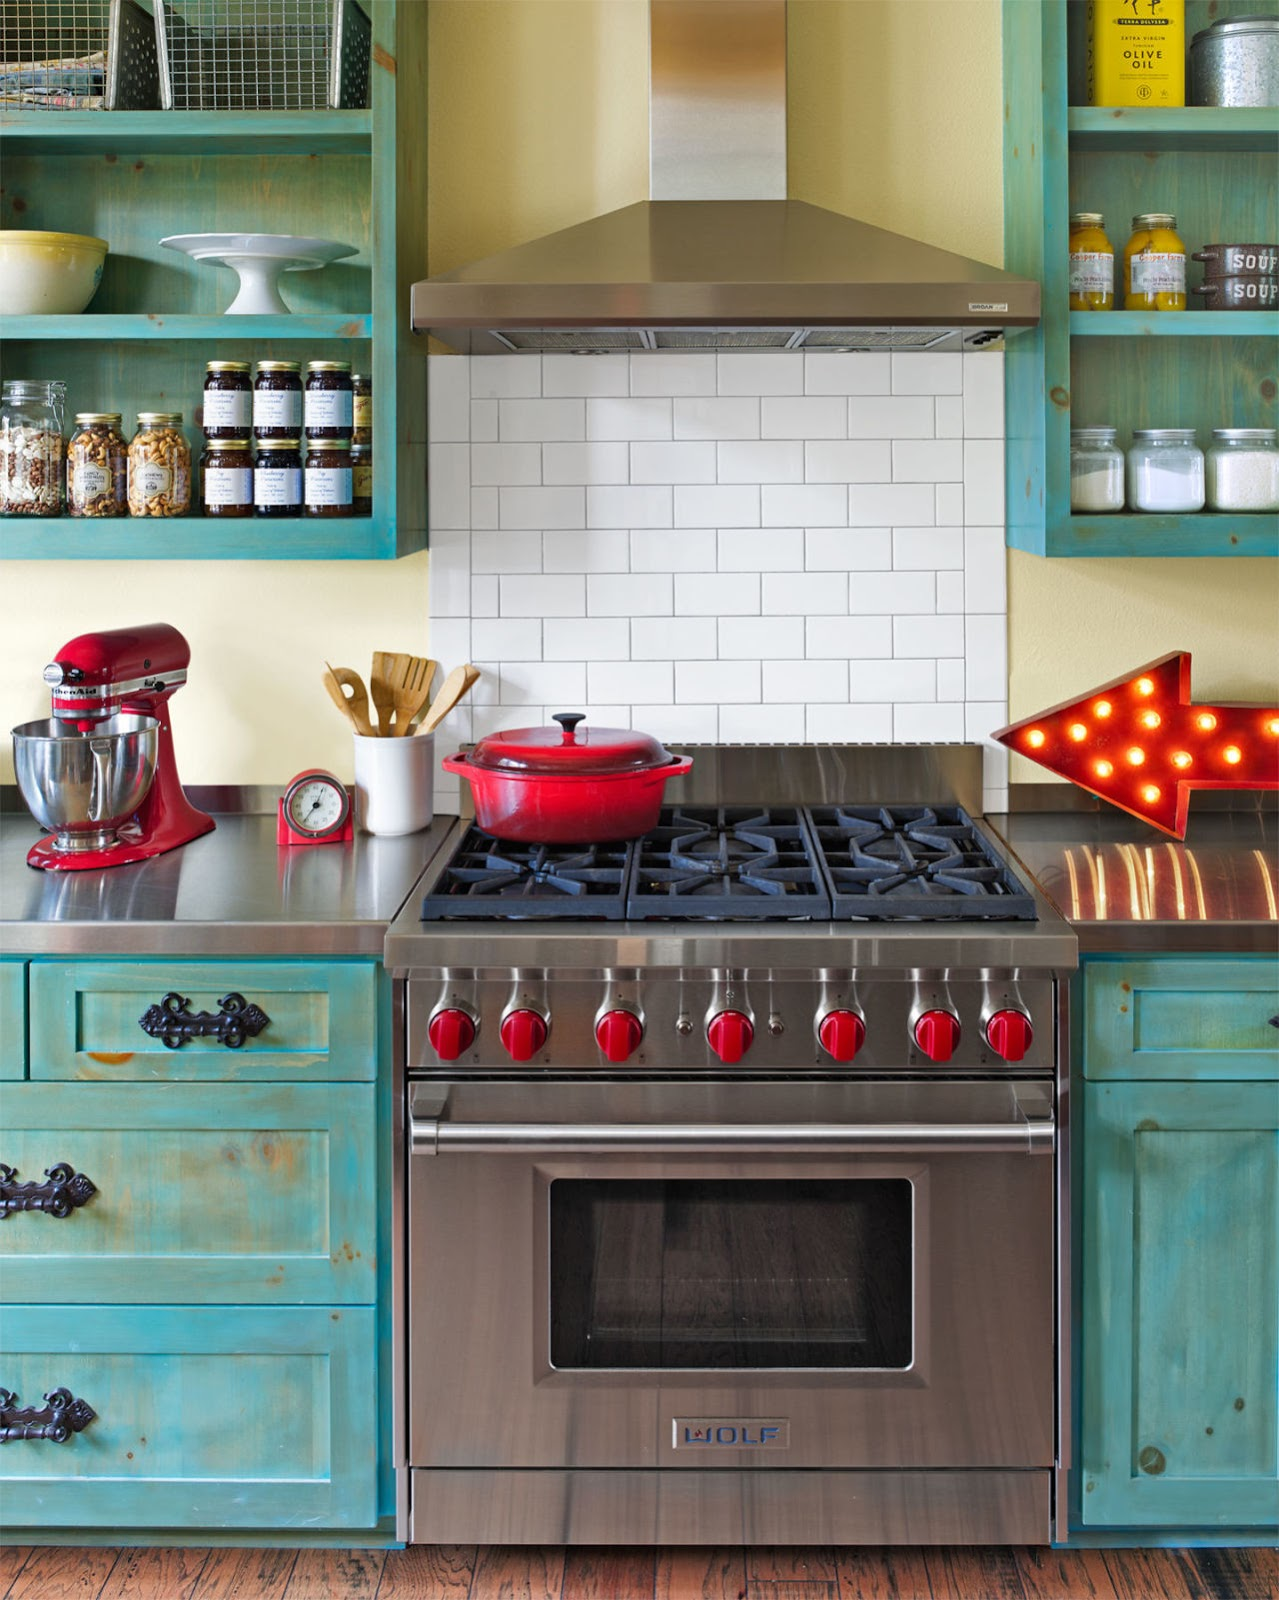 Colorful Kitchen Accessories Counter Options Decor Inspiration Kitchens That Work Design